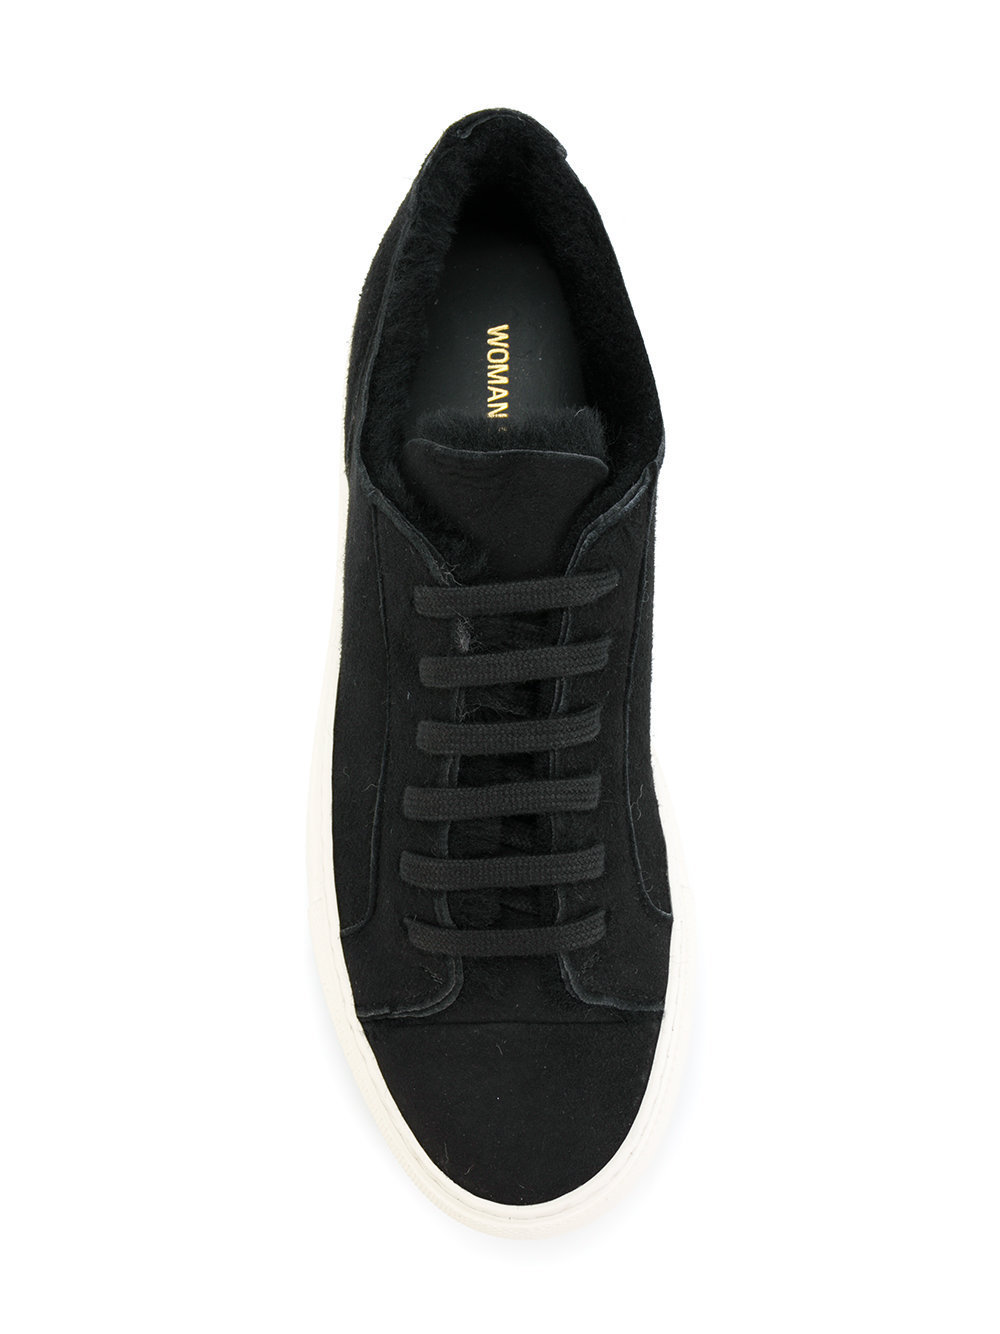 【COMMON PROJECTS】17AW★Tournamentムートンスニーカー/Black